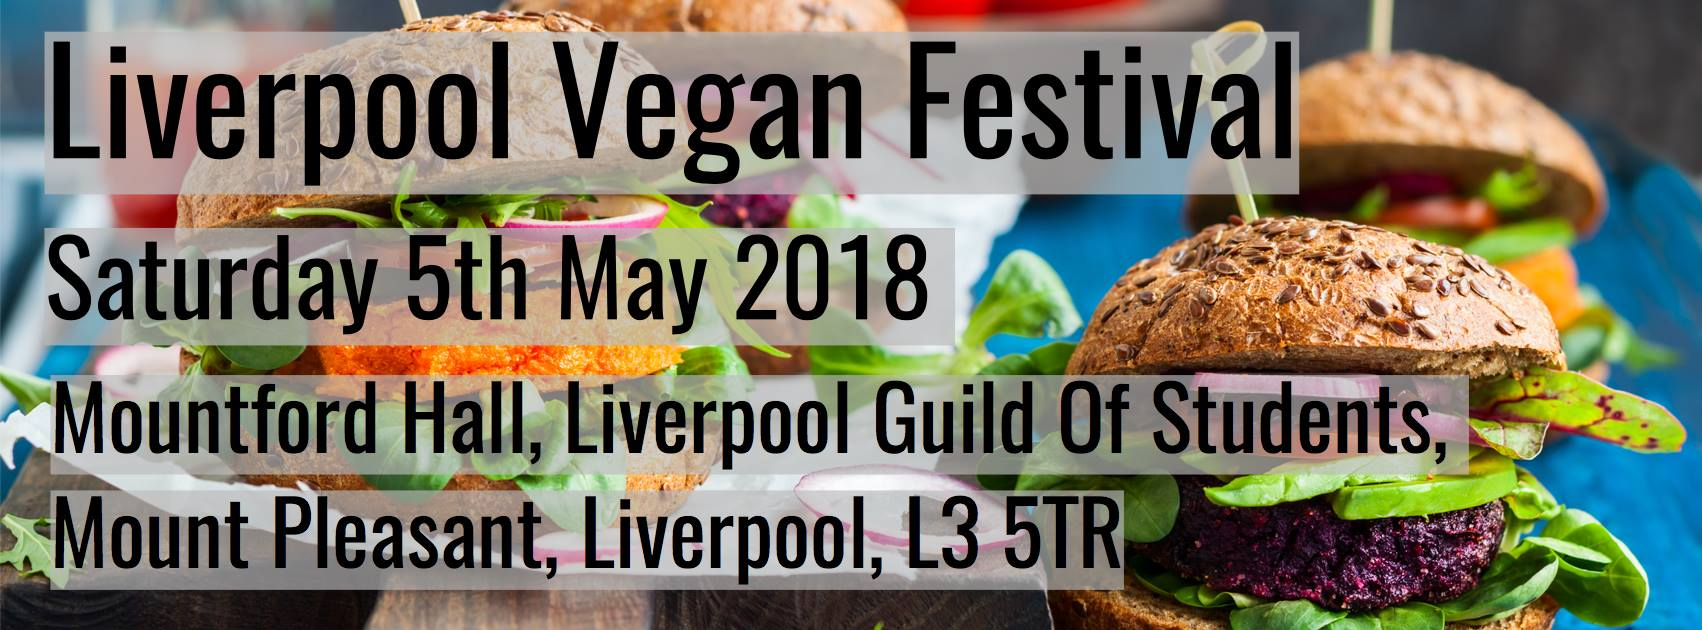 Liverpool Vegan Festival - May 2018